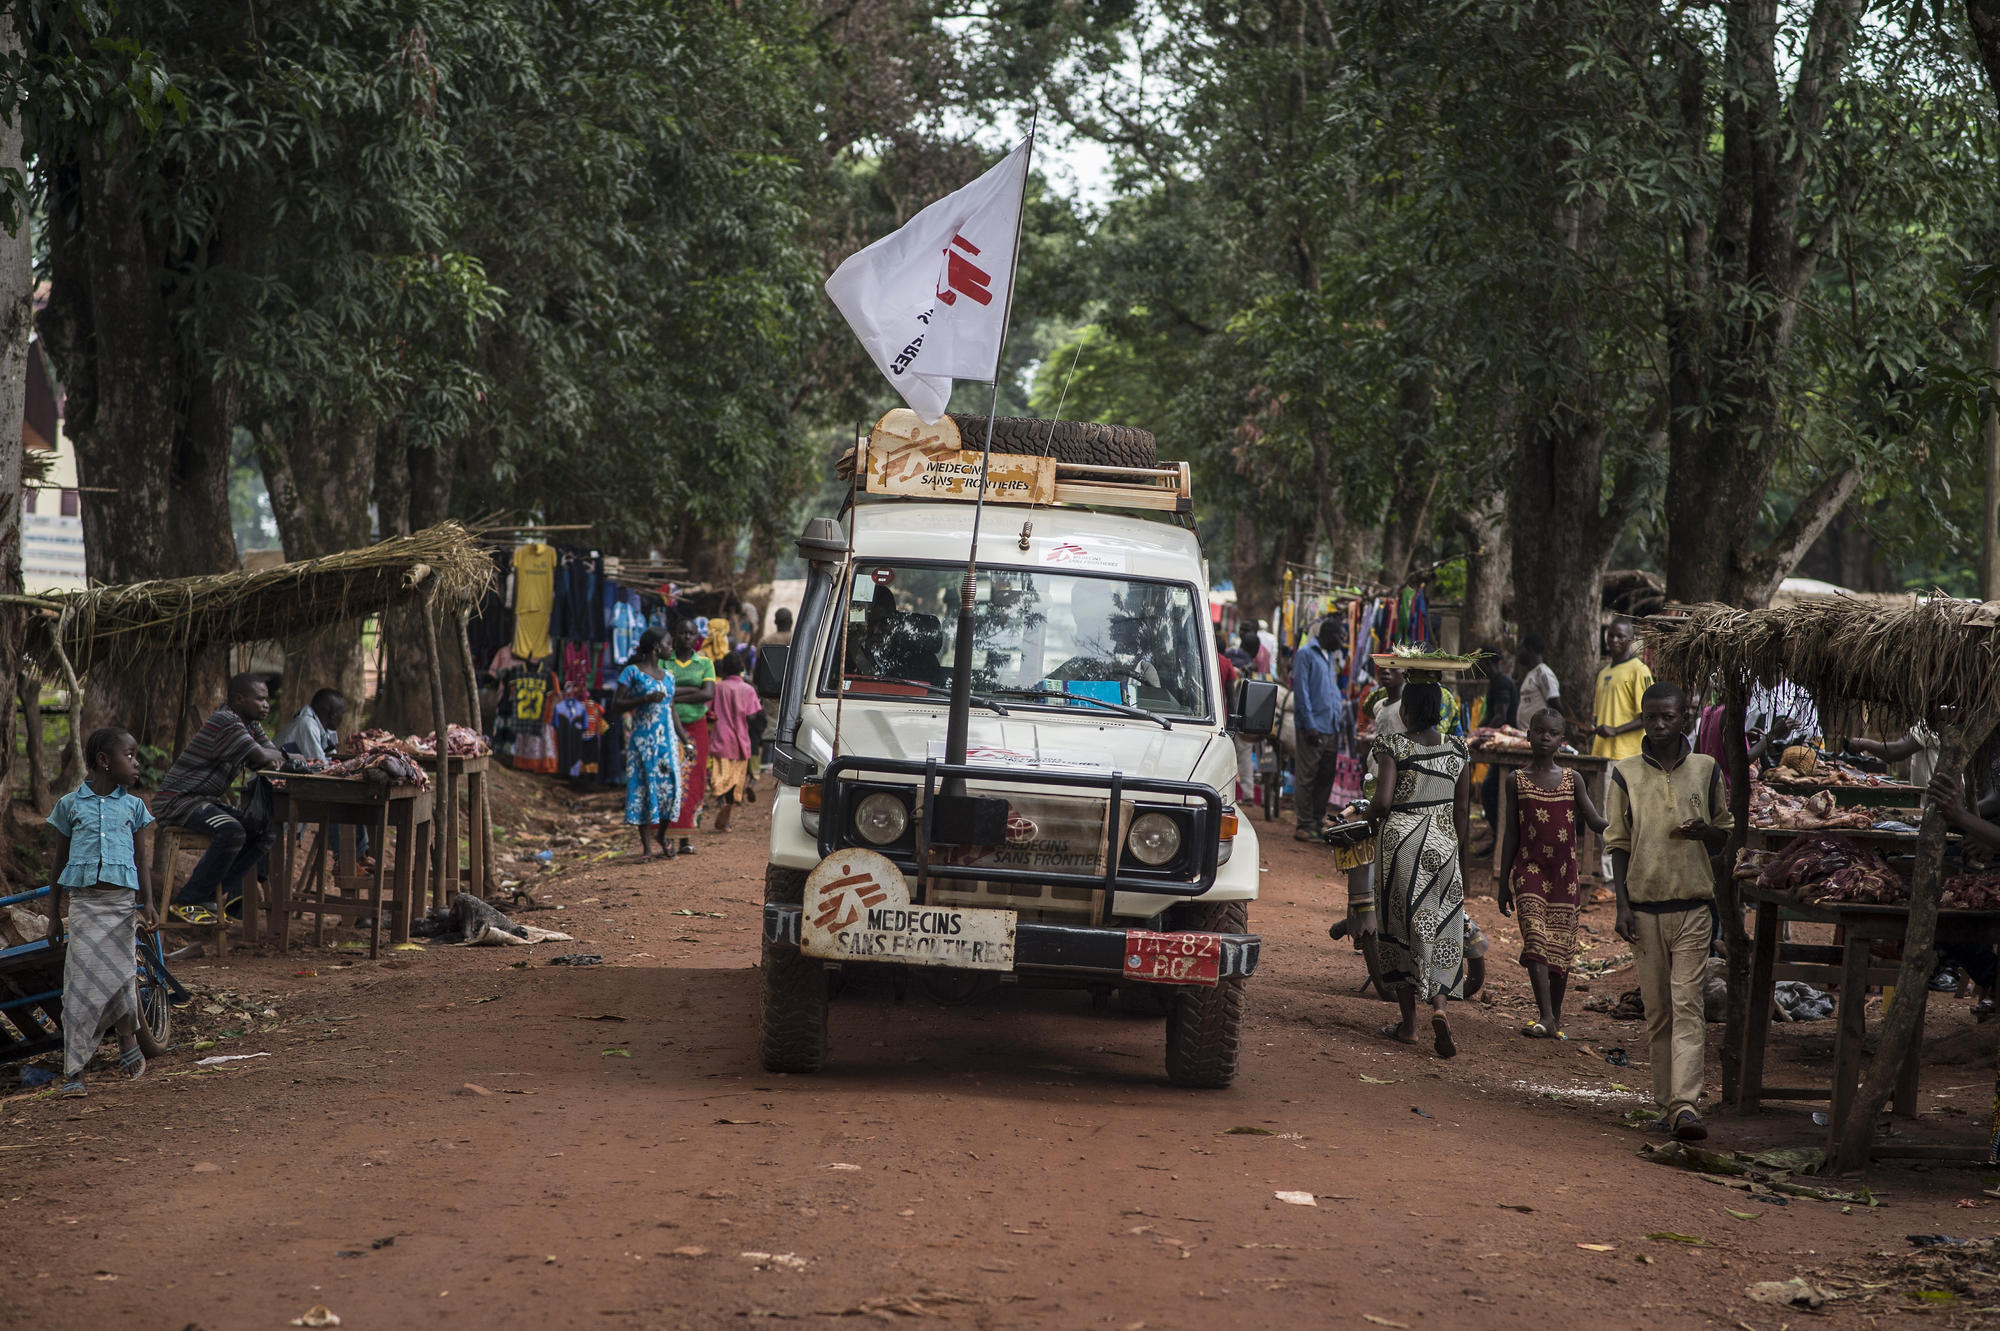 MSF Land Cruiser on the airport road in Bambari, Central African Republic